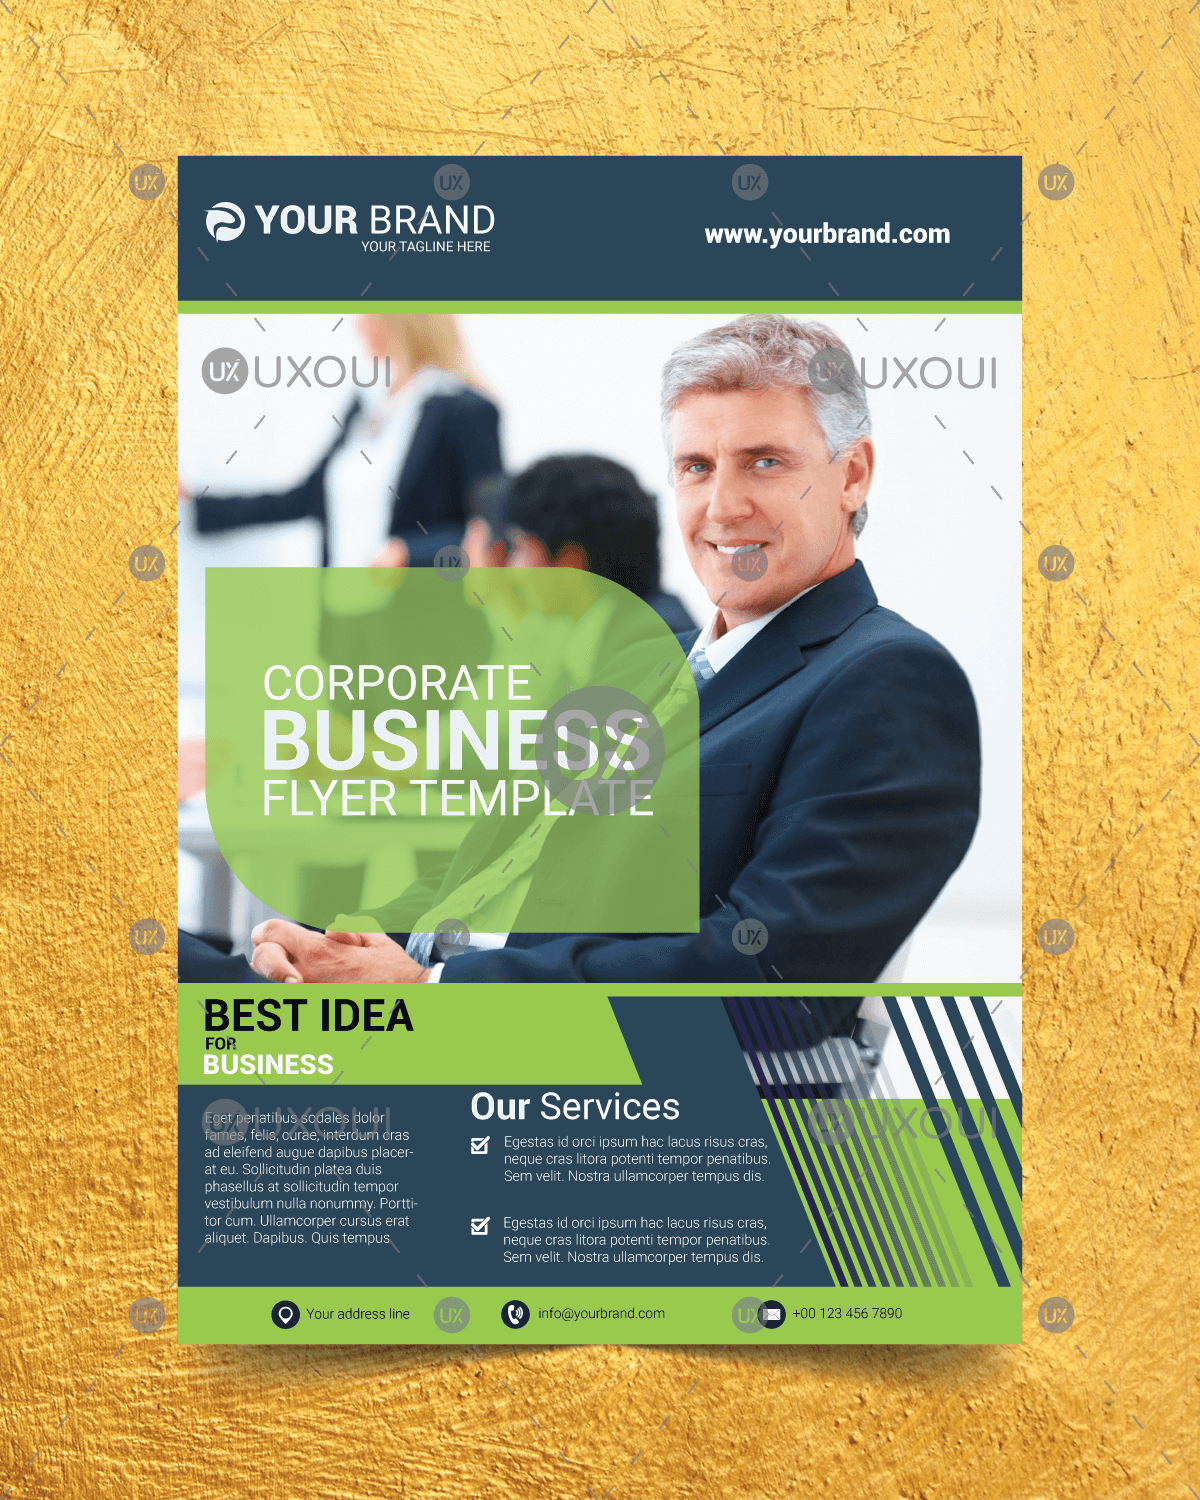 Corporate business flyer design template vector with creative layout corporate business flyer design template accmission Choice Image